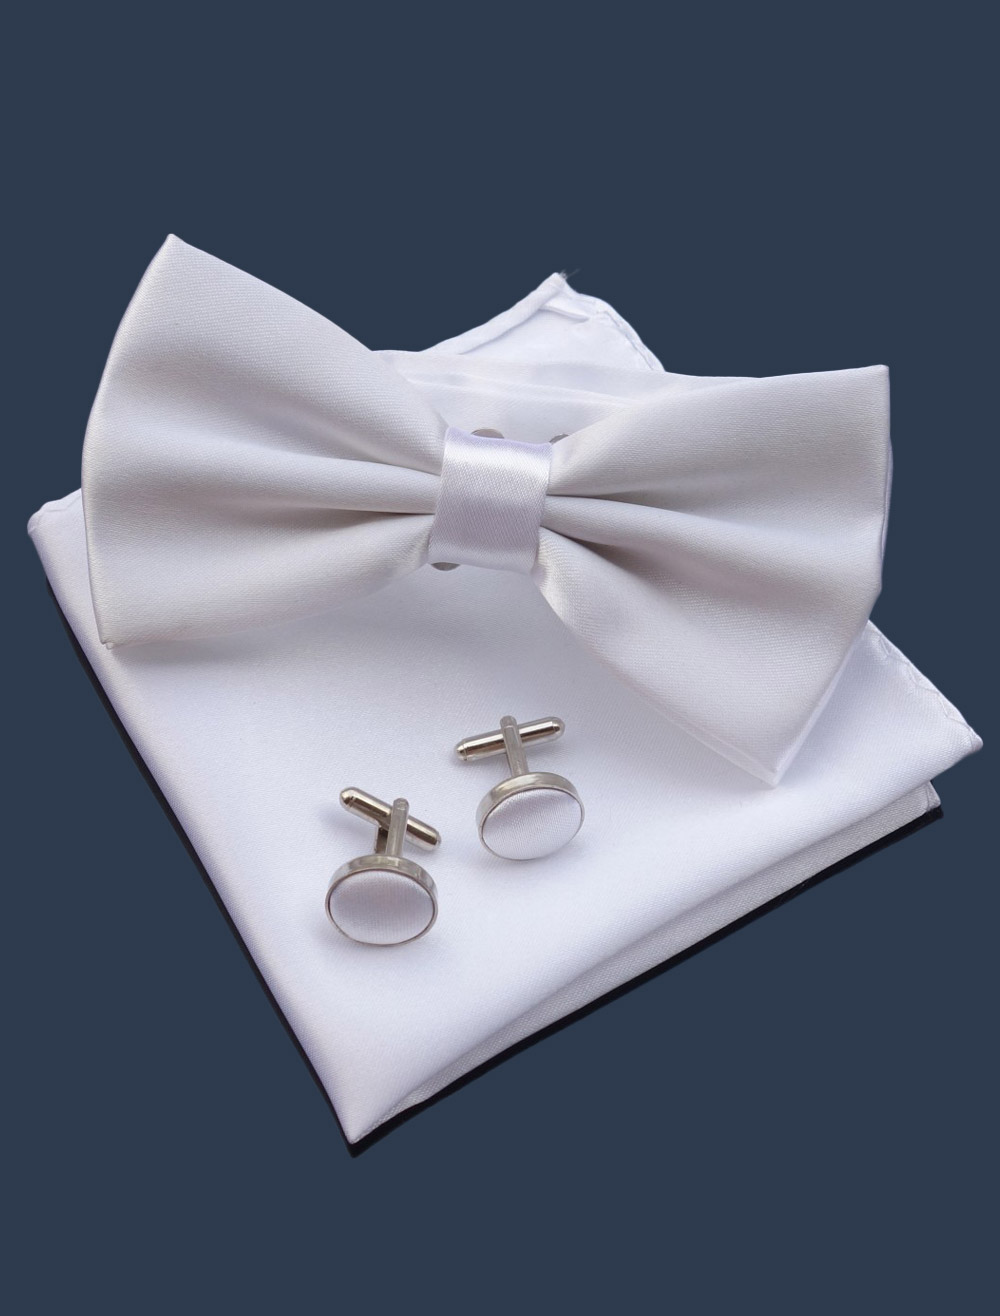 White Groom's Kerchief Bow Tie and Cufflink Polyester Wedding Accessories